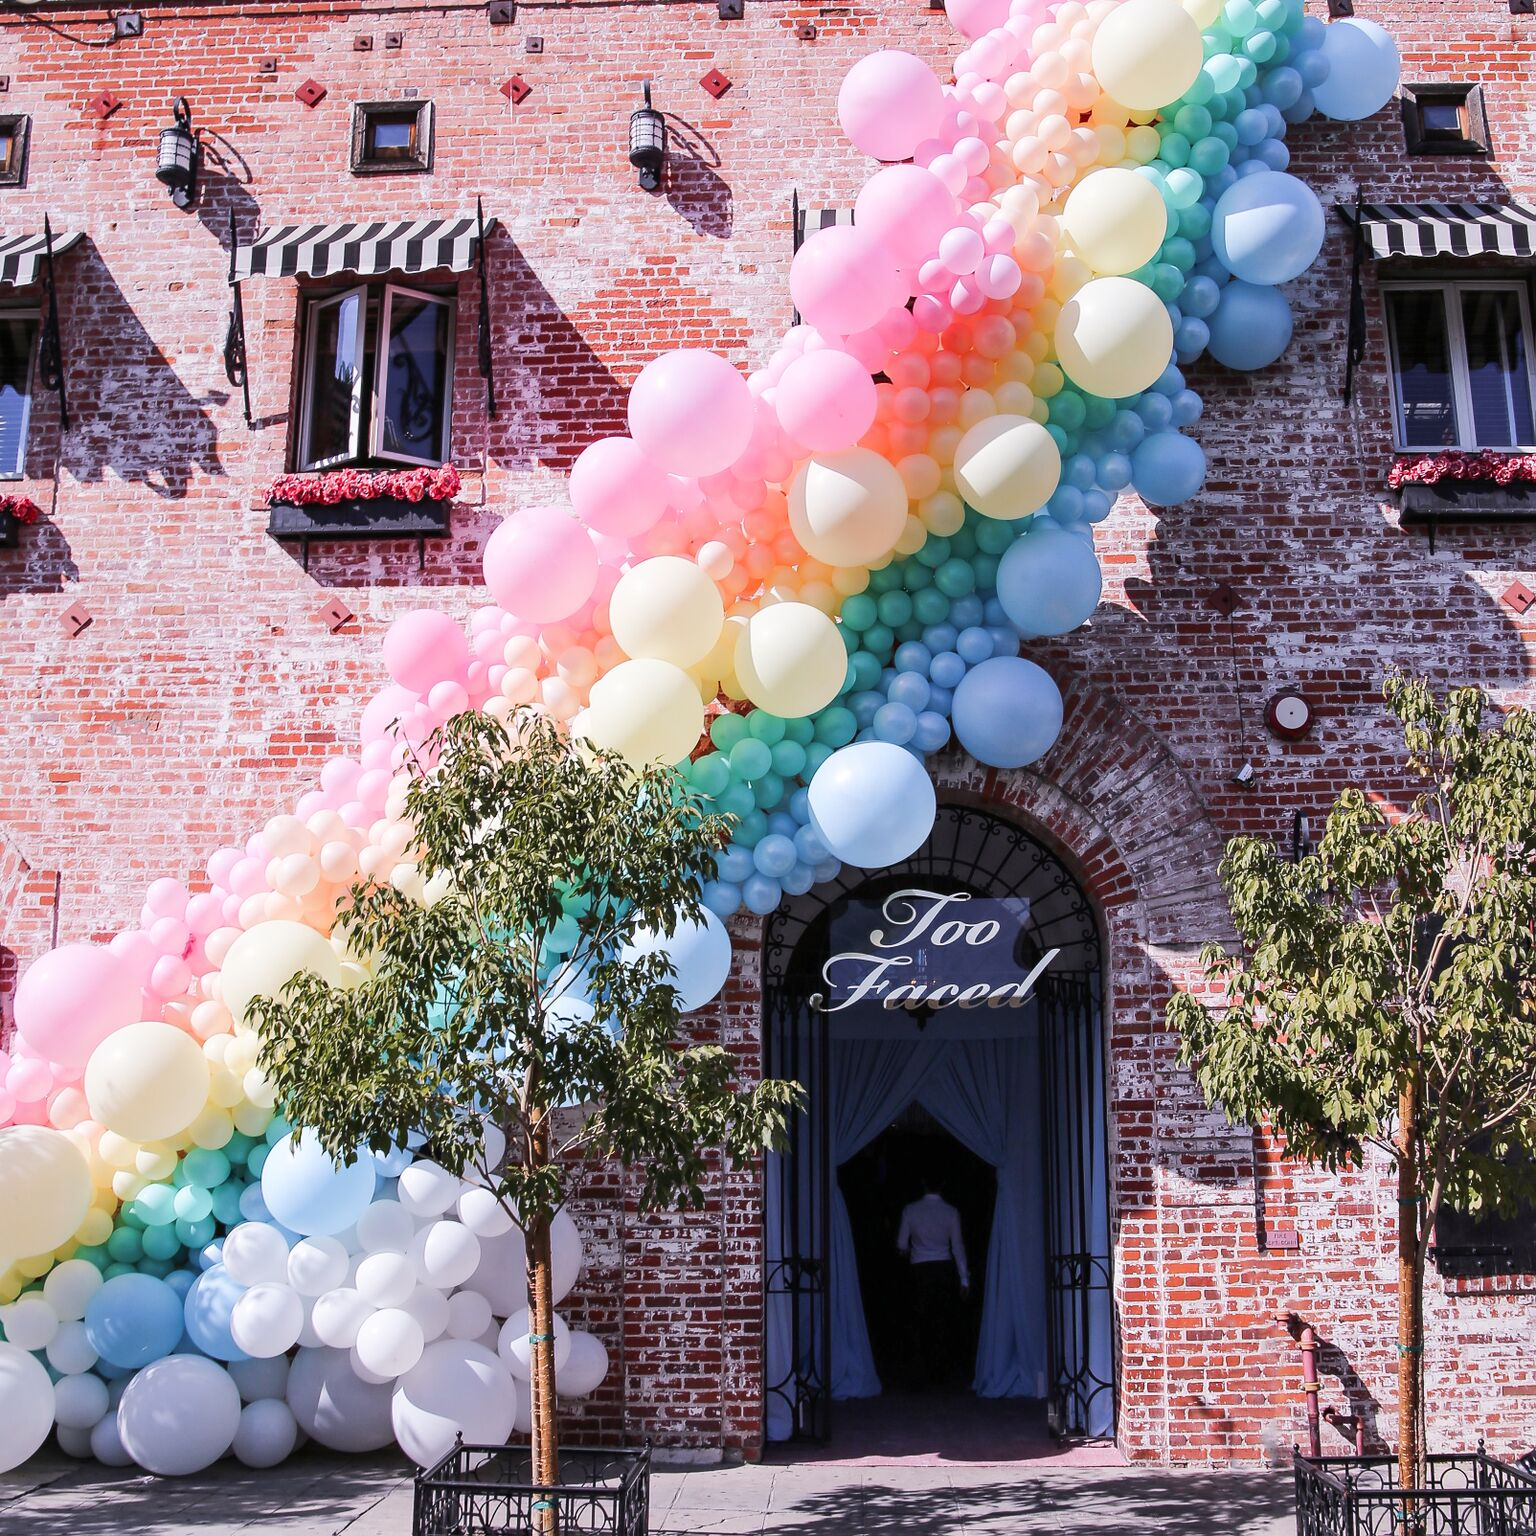 too faced, carondelet house, revelry event designers, mindy weiss